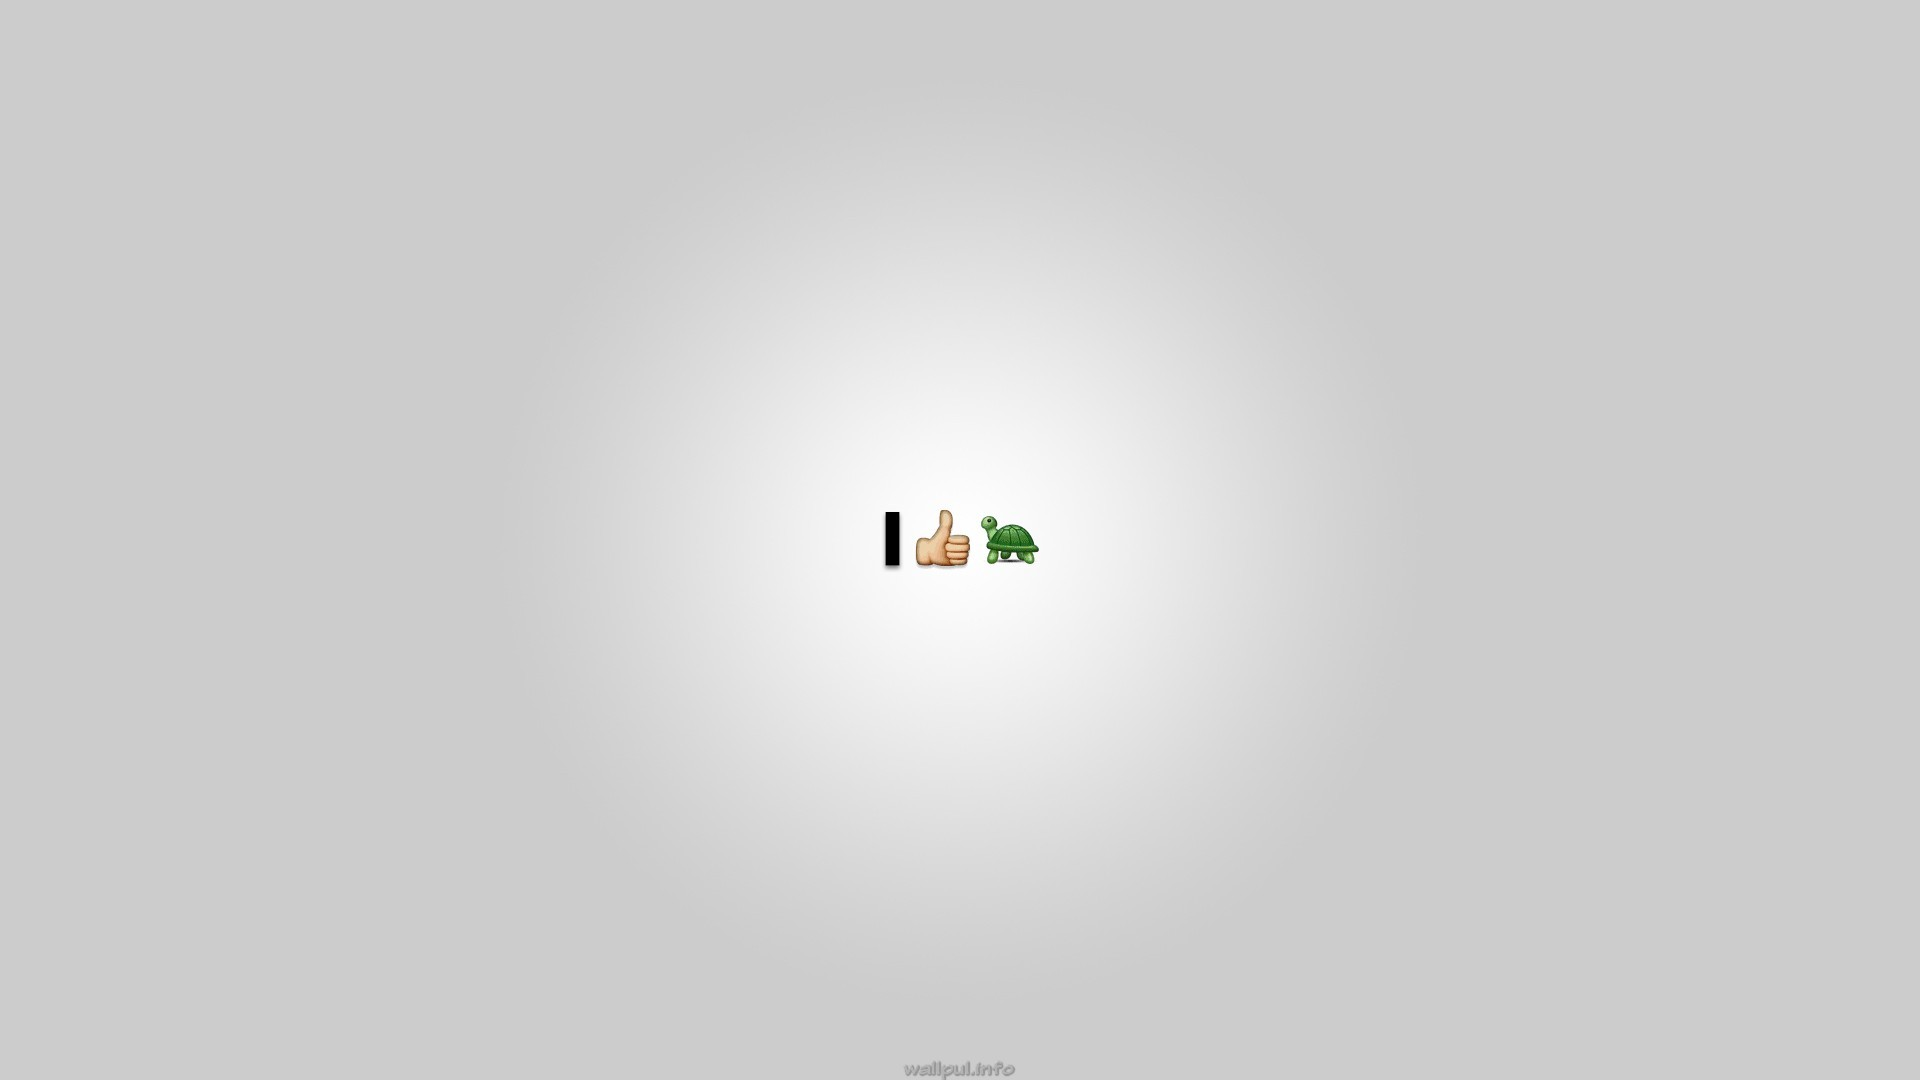 20 best images about Wallpaper Emoji ❤ on Pinterest | iPhone .